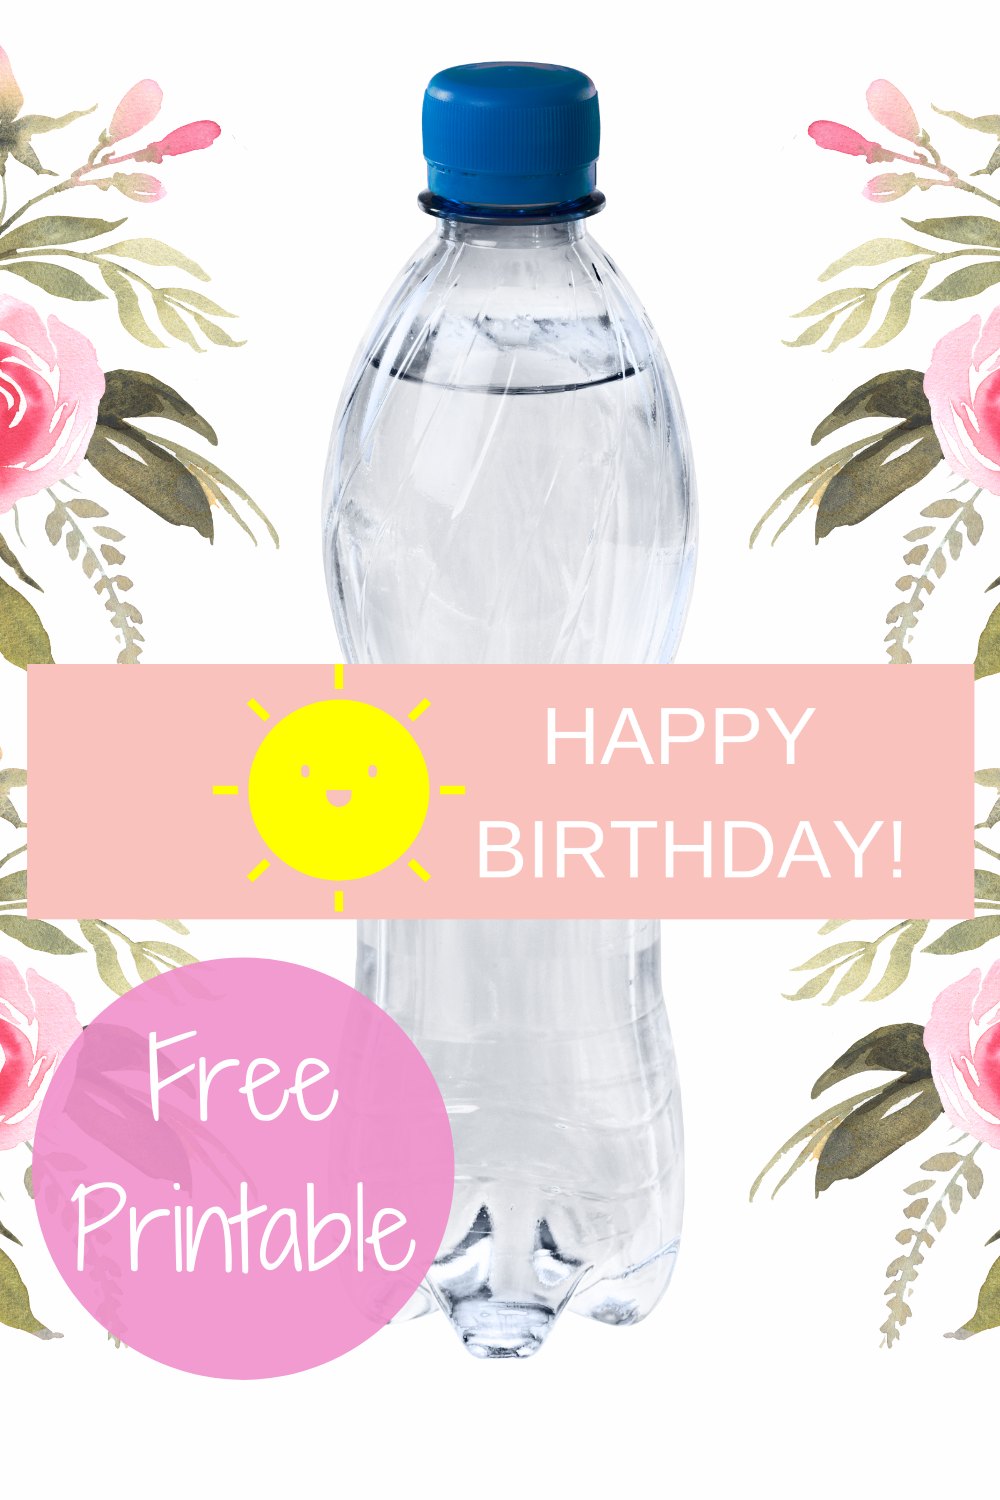 free download: sunshine water bottle label for kids birthday party